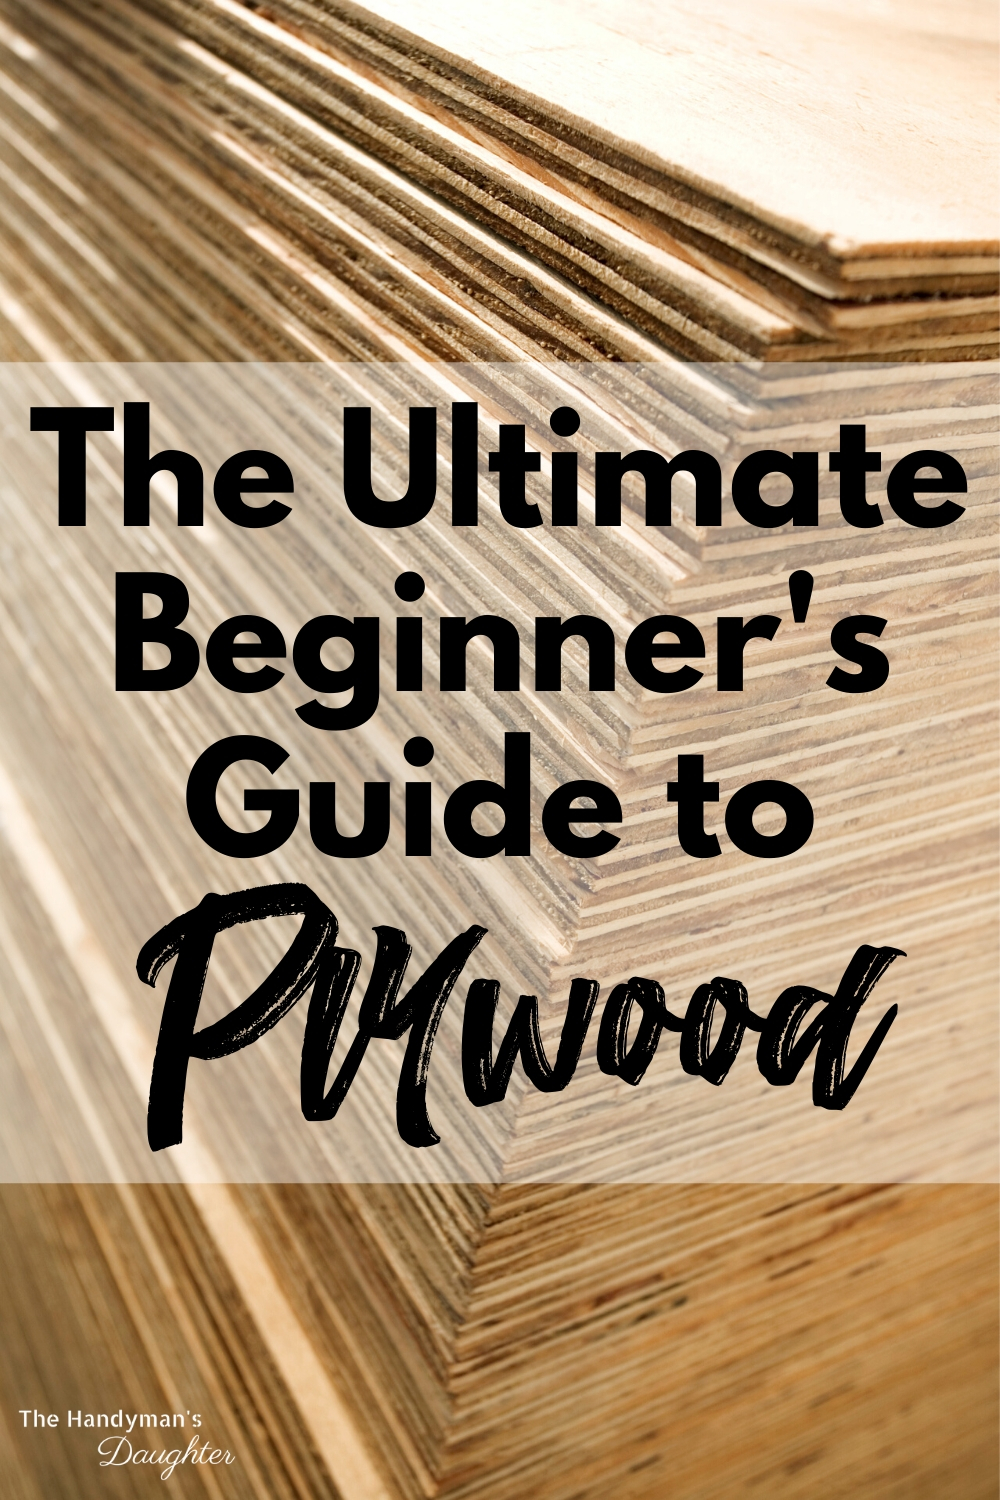 The ultimate beginner's guide to types of plywood